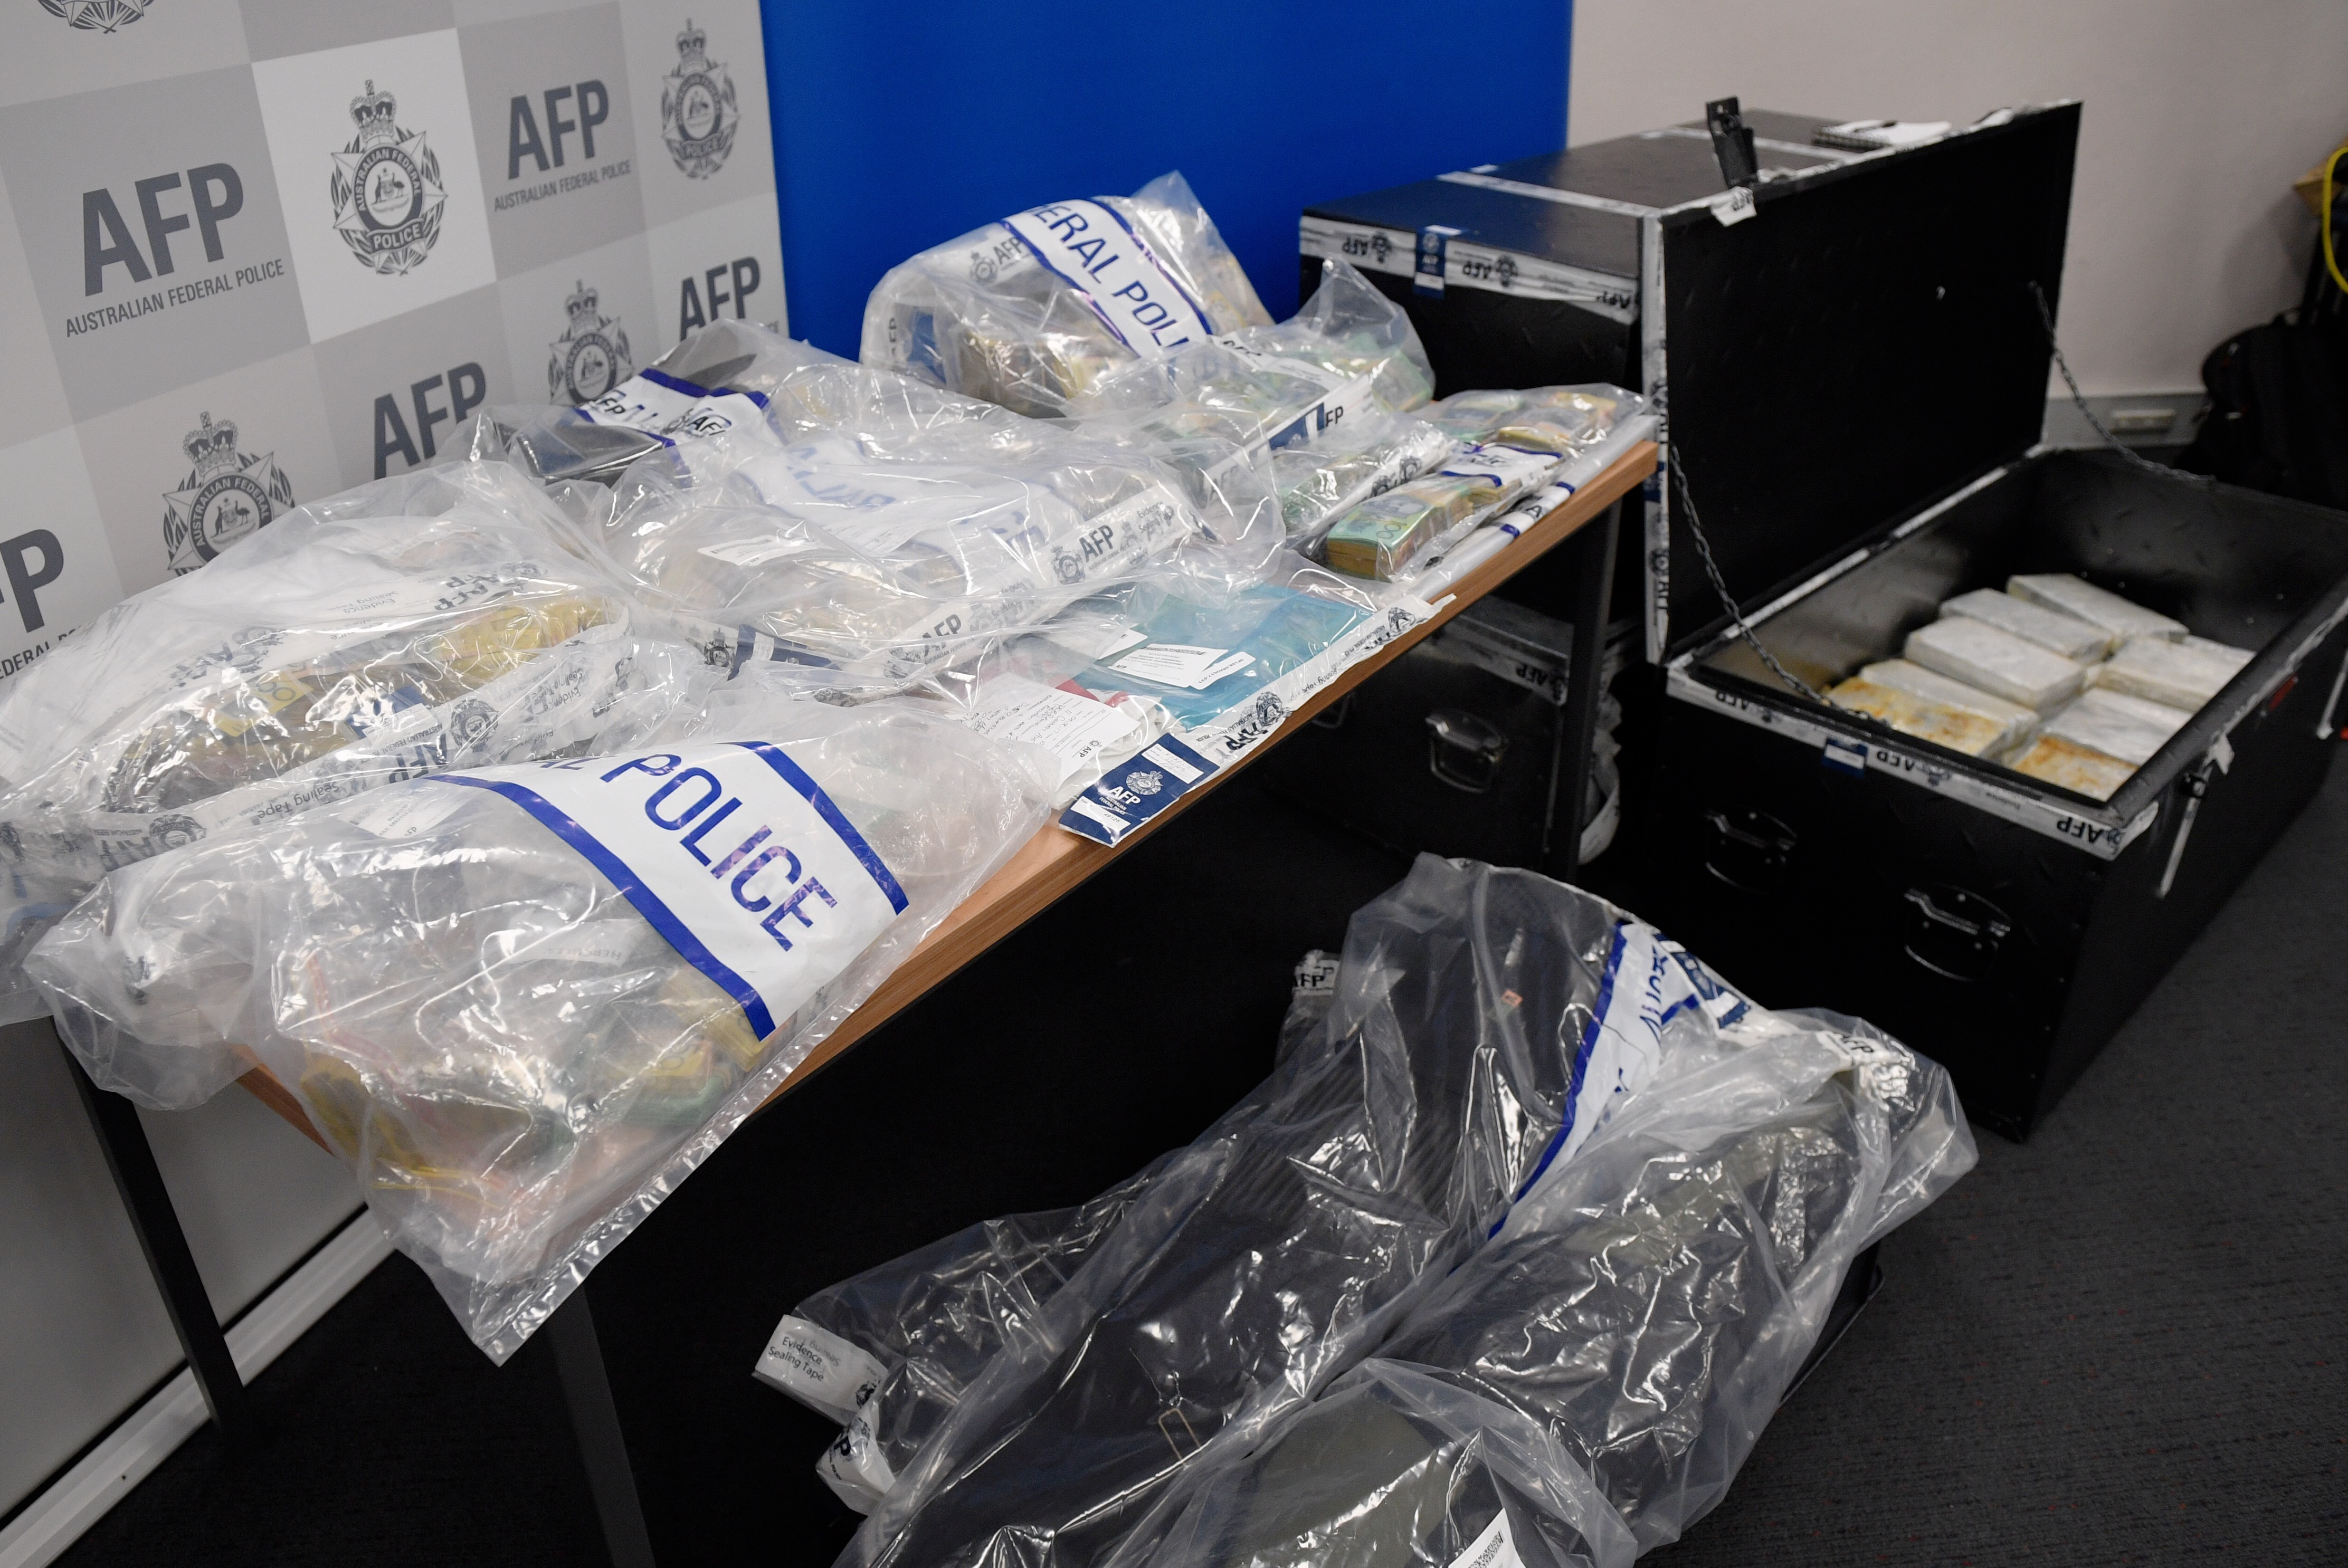 Drugs and illegal tobacco were seized during Tuesday's raids. (AAP)